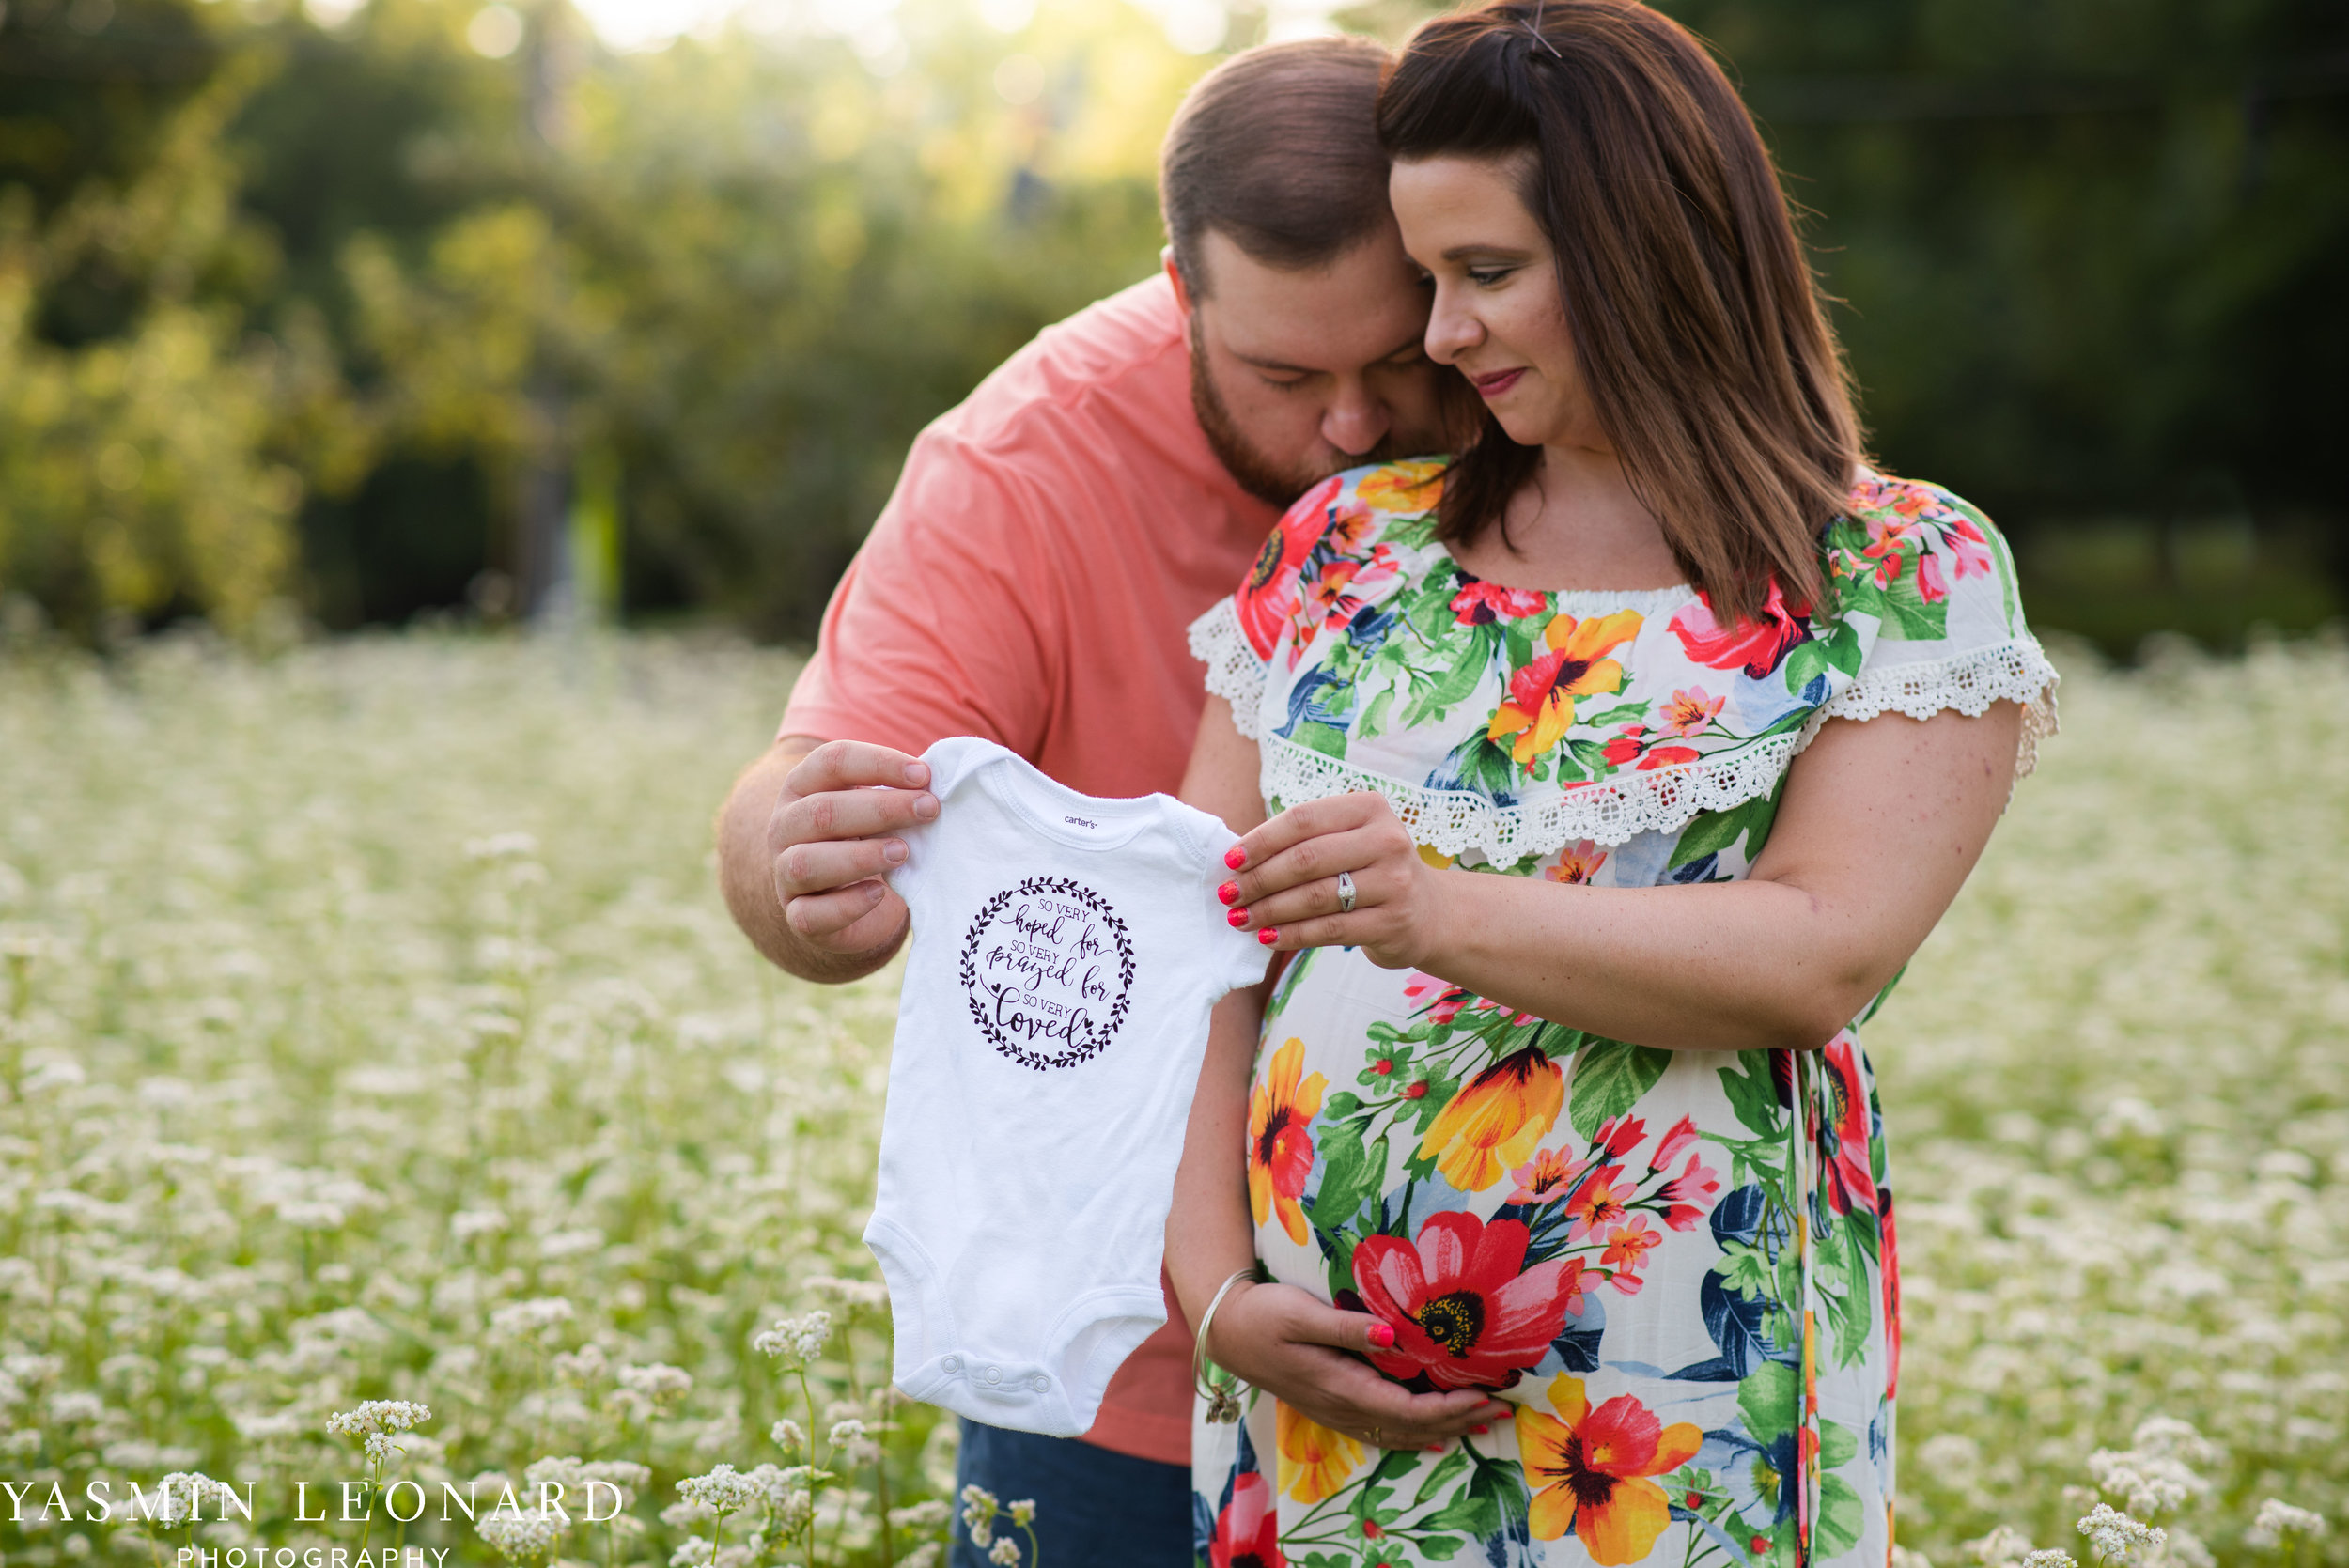 Maternity Session - Summer Maternity Session - Maternity Ideas - High Point Photographer - NC Photographer - What to wear Maternity Session-1.jpg